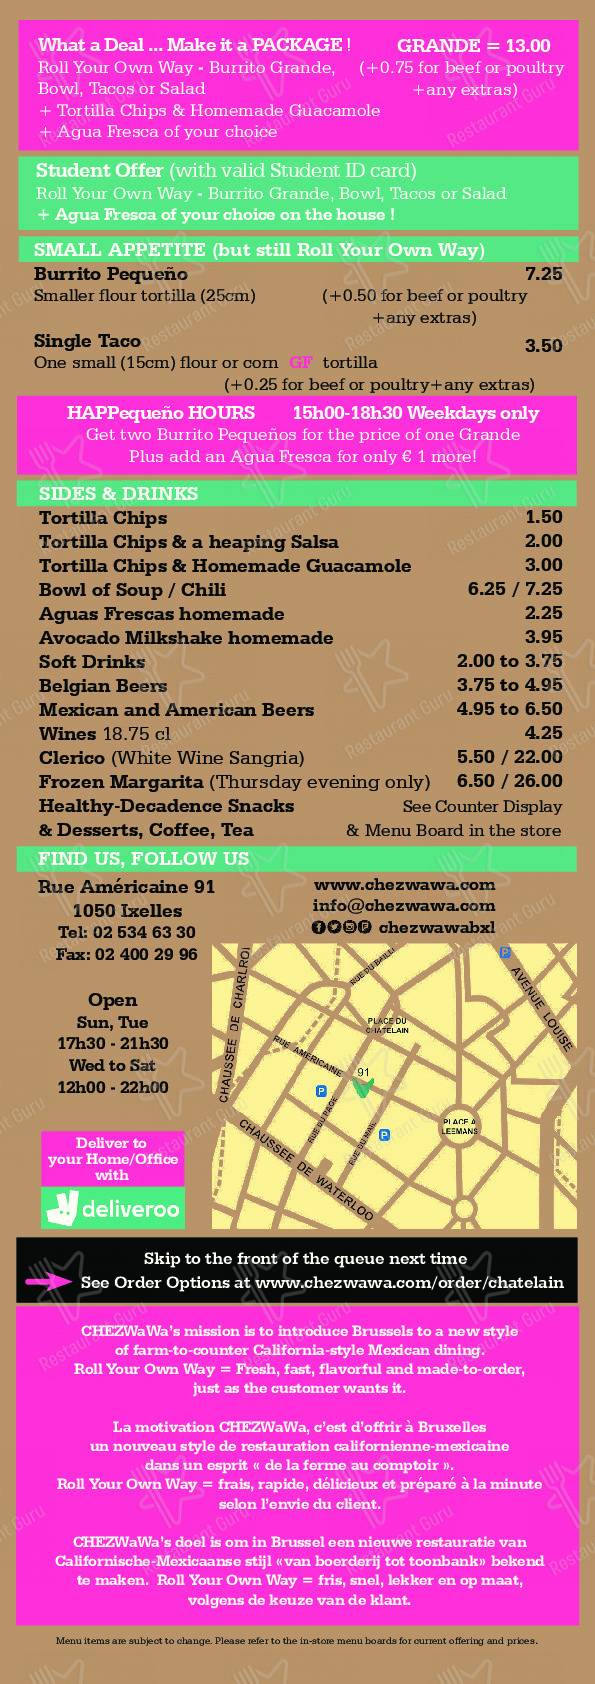 Check out the menu for CHEZWaWa